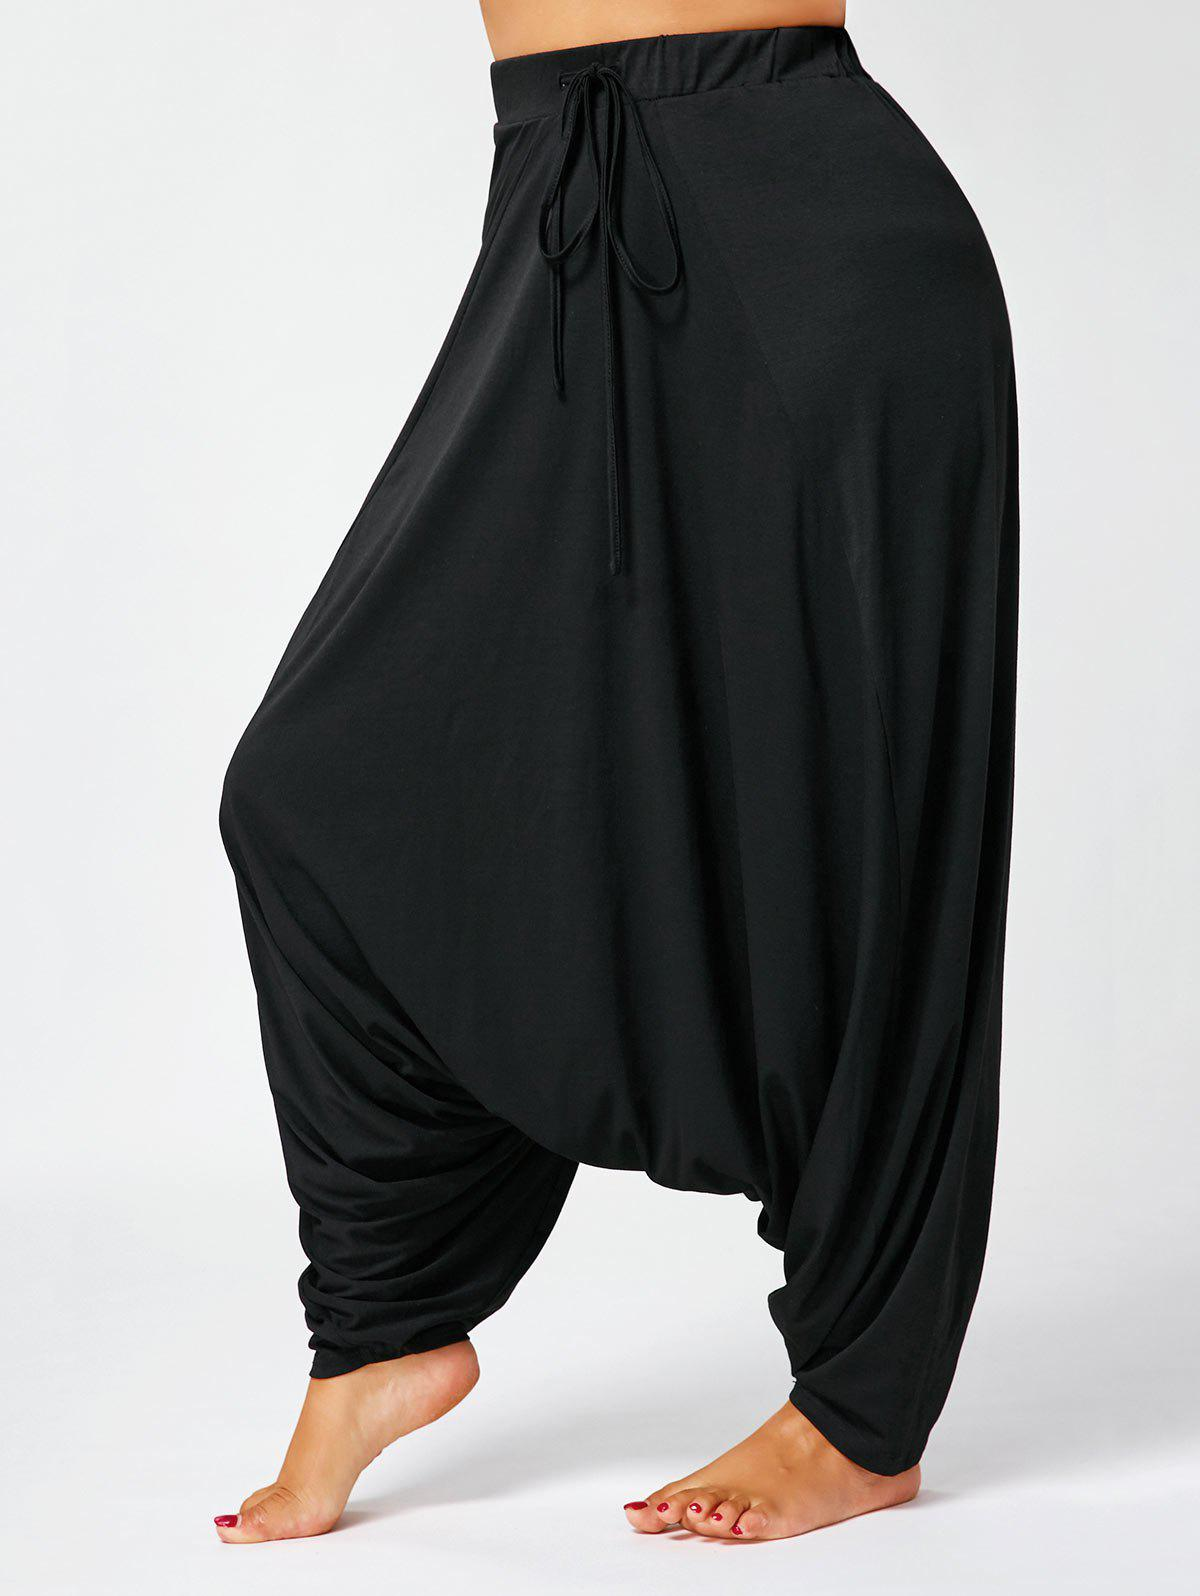 Drawstring Plus Size Drop Bottom Harem PantsWOMEN<br><br>Size: 4XL; Color: BLACK; Style: Casual; Length: Normal; Material: Polyester,Spandex; Fit Type: Loose; Waist Type: High; Closure Type: Drawstring; Front Style: Flat; Pattern Type: Solid; Pant Style: Harem Pants; Elasticity: Elastic; With Belt: No; Weight: 0.5000kg; Package Contents: 1 x Pants;